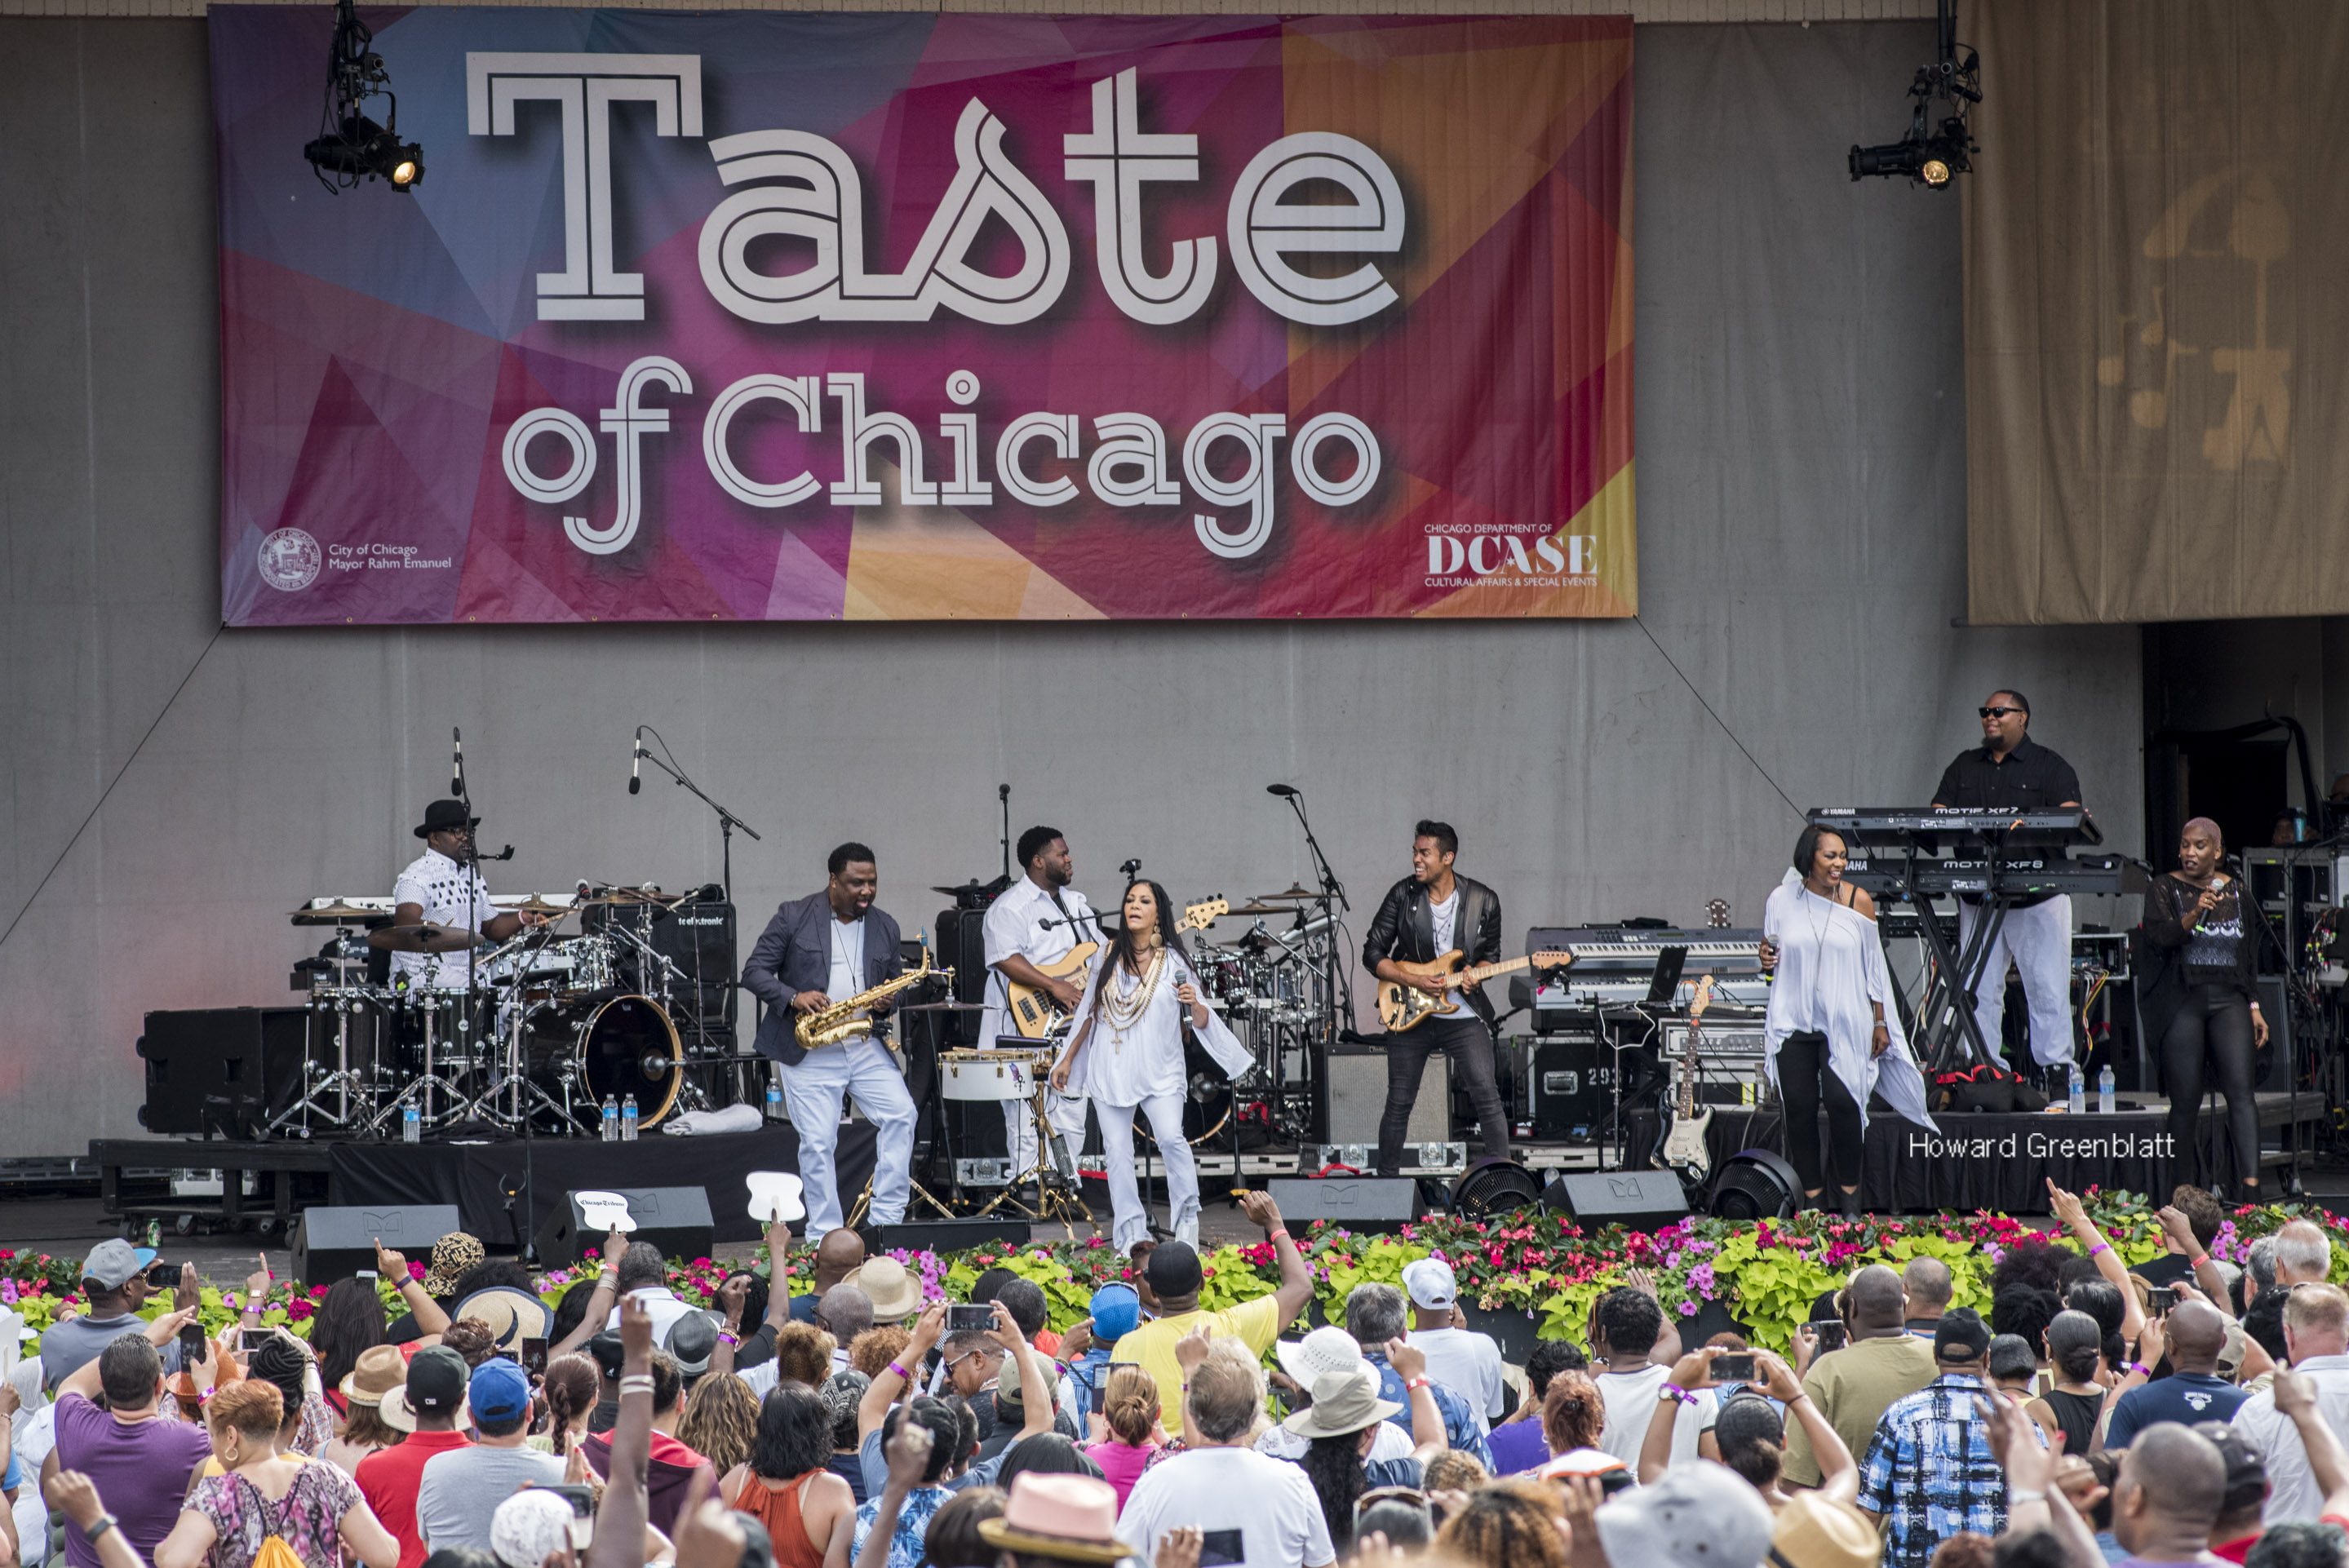 Taste Of Chicago Wraps Up With Retro Feel